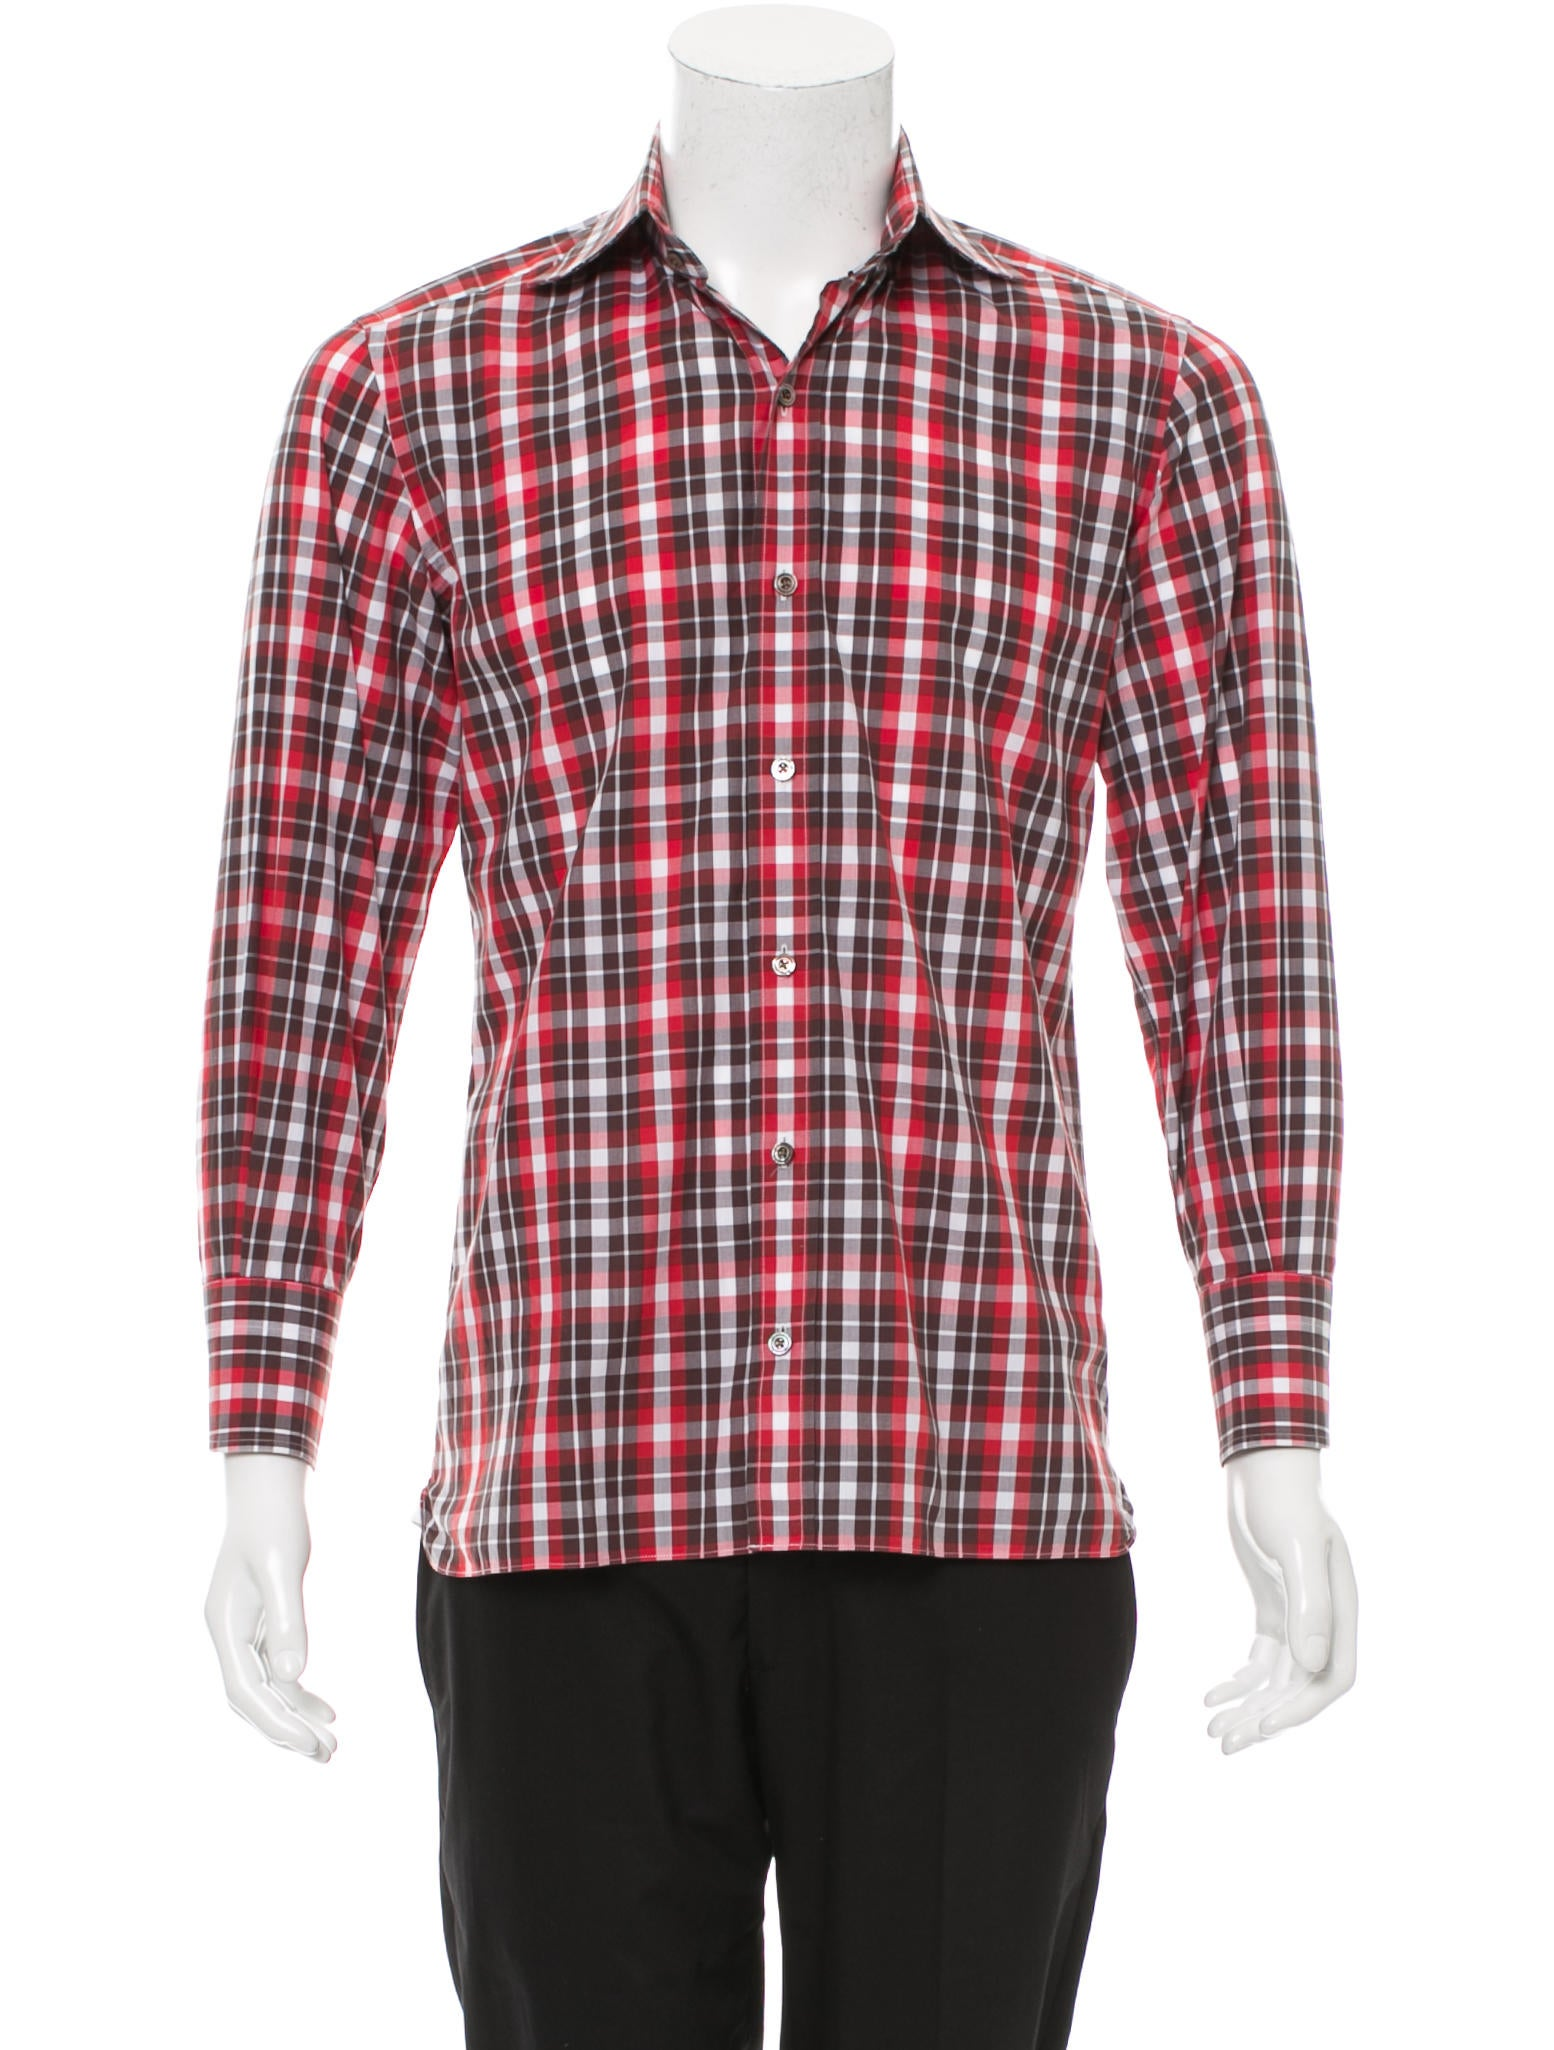 Free shipping on Men's button-up and dress shirts, non-iron, casual, flannel and plaid shirts for men. Free shipping and returns on men's shirts at ditilink.gq